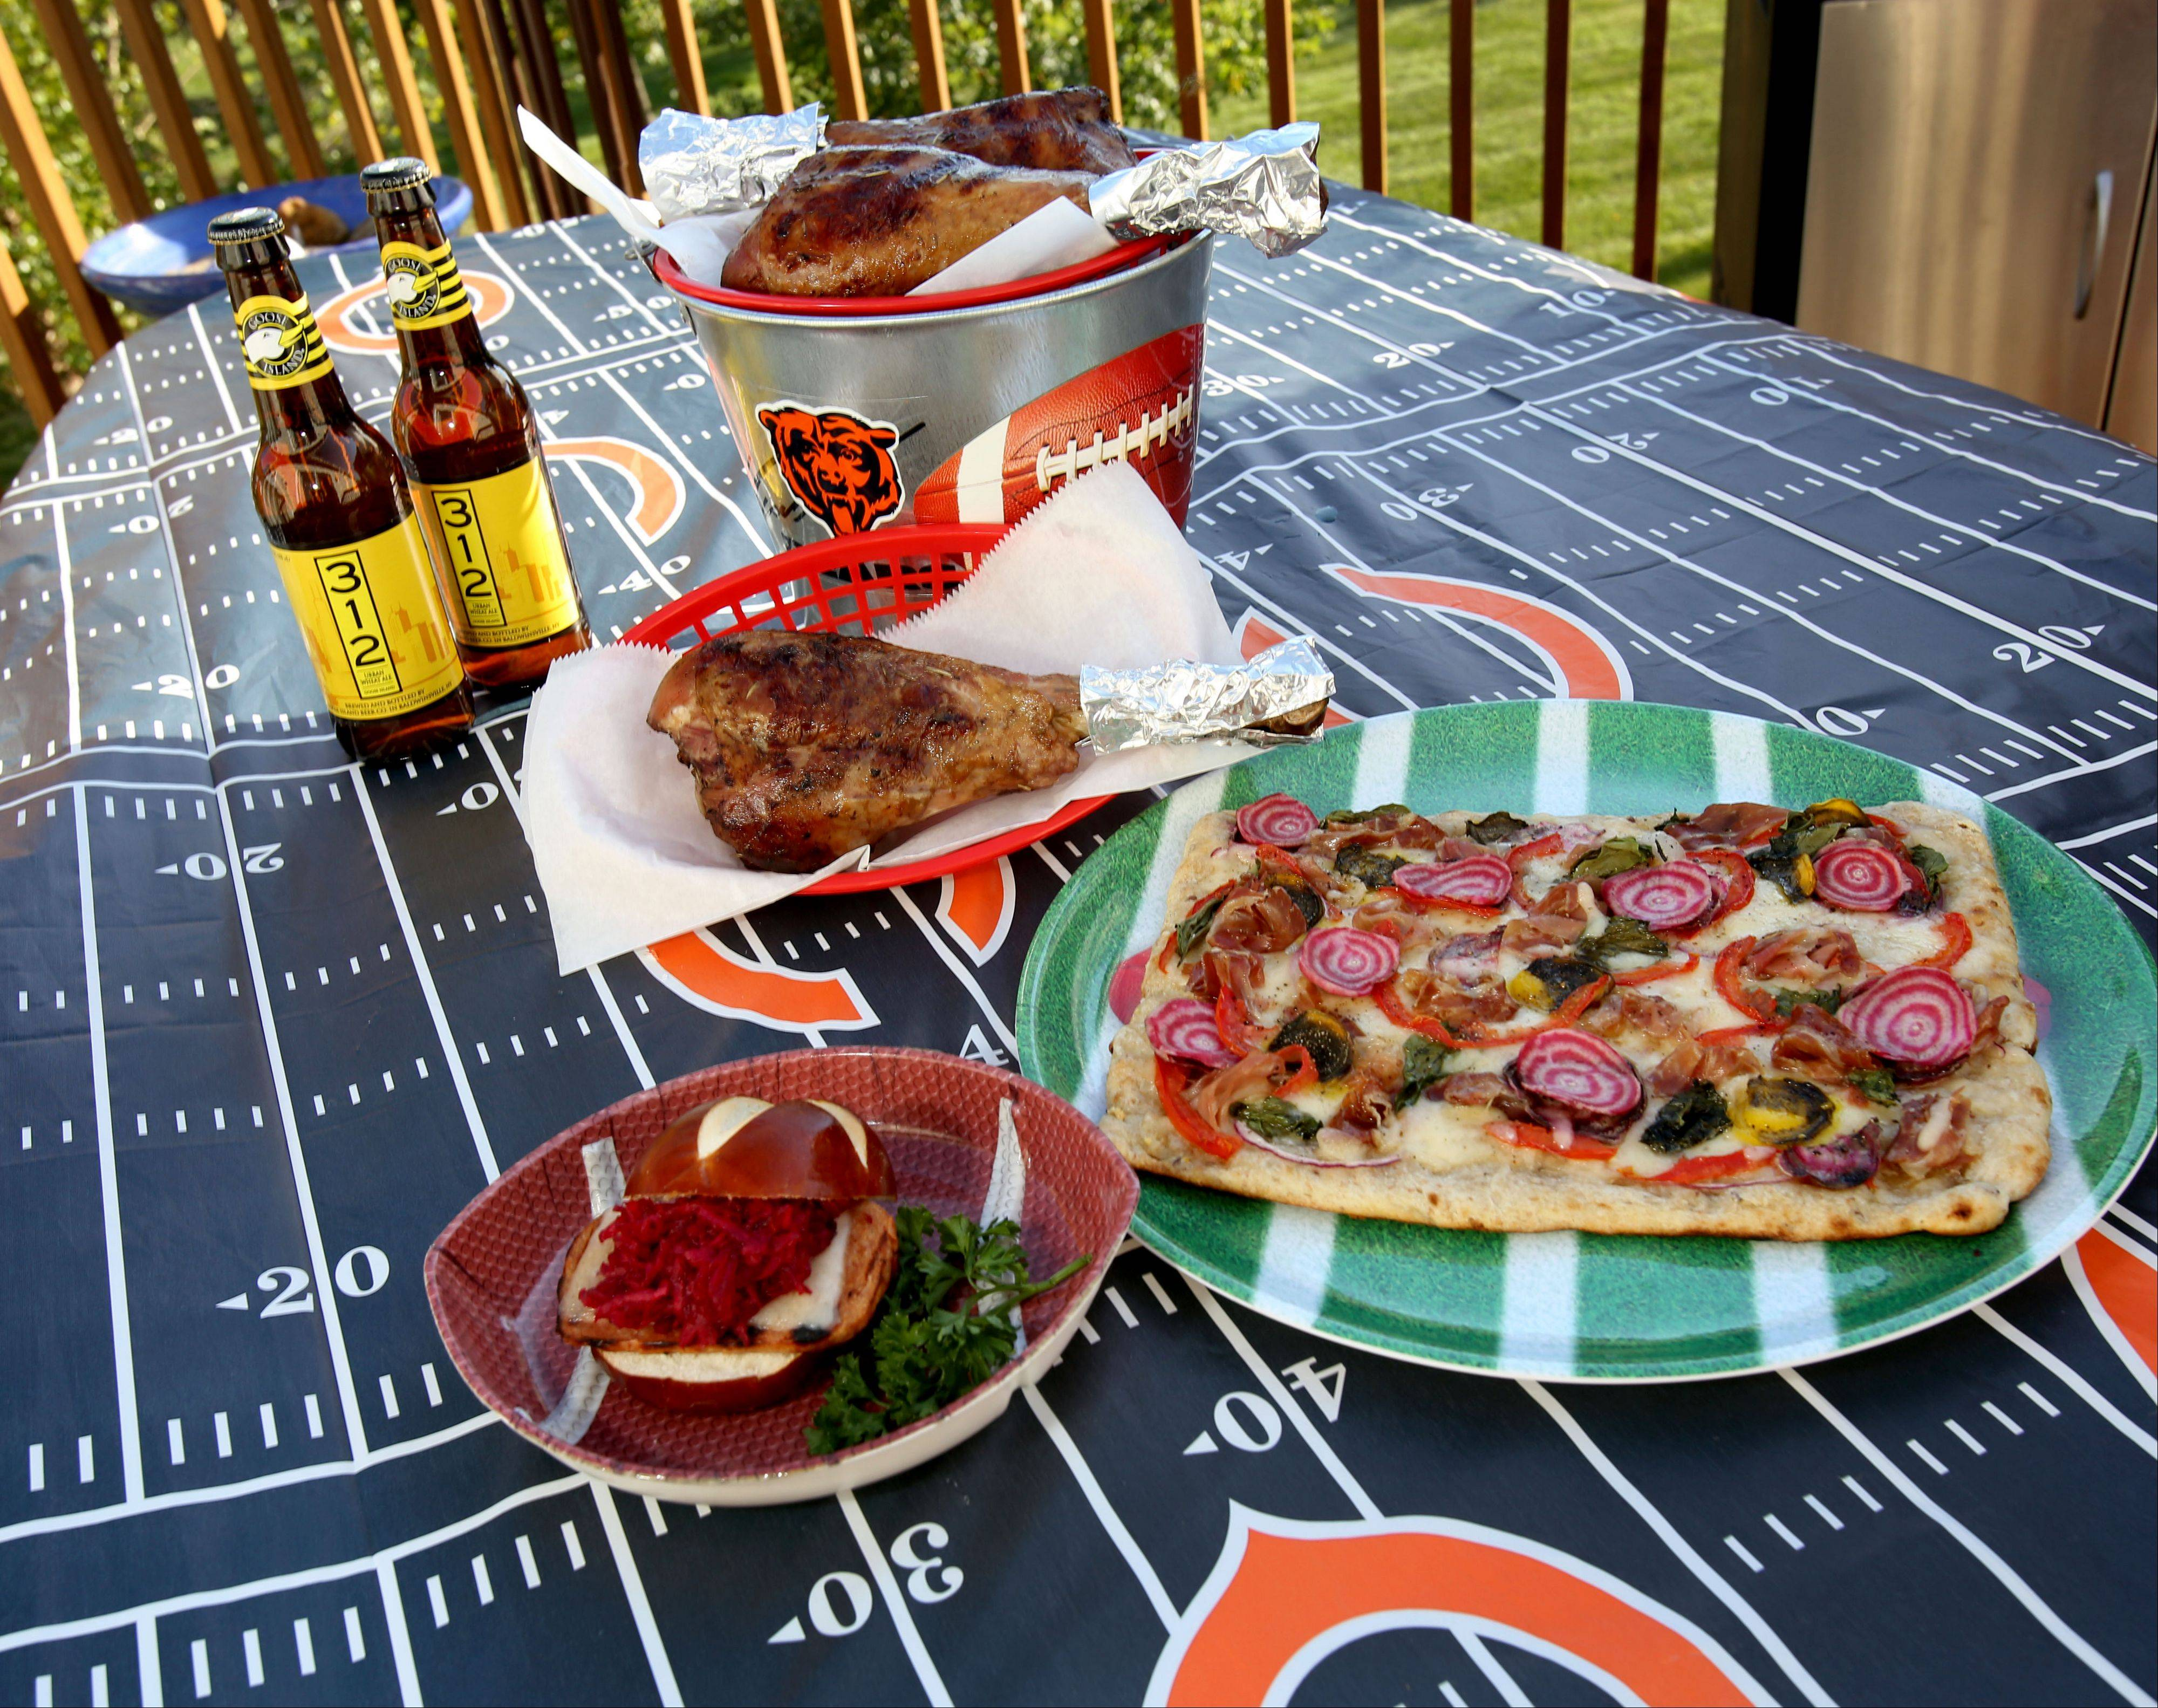 Lori Wiktorek's game day spread includes grilled pizza, topped with thinly sliced beets and prosciutto, beet slaw and havarti-topped Spam sliders and apple cider-brined turkey legs.